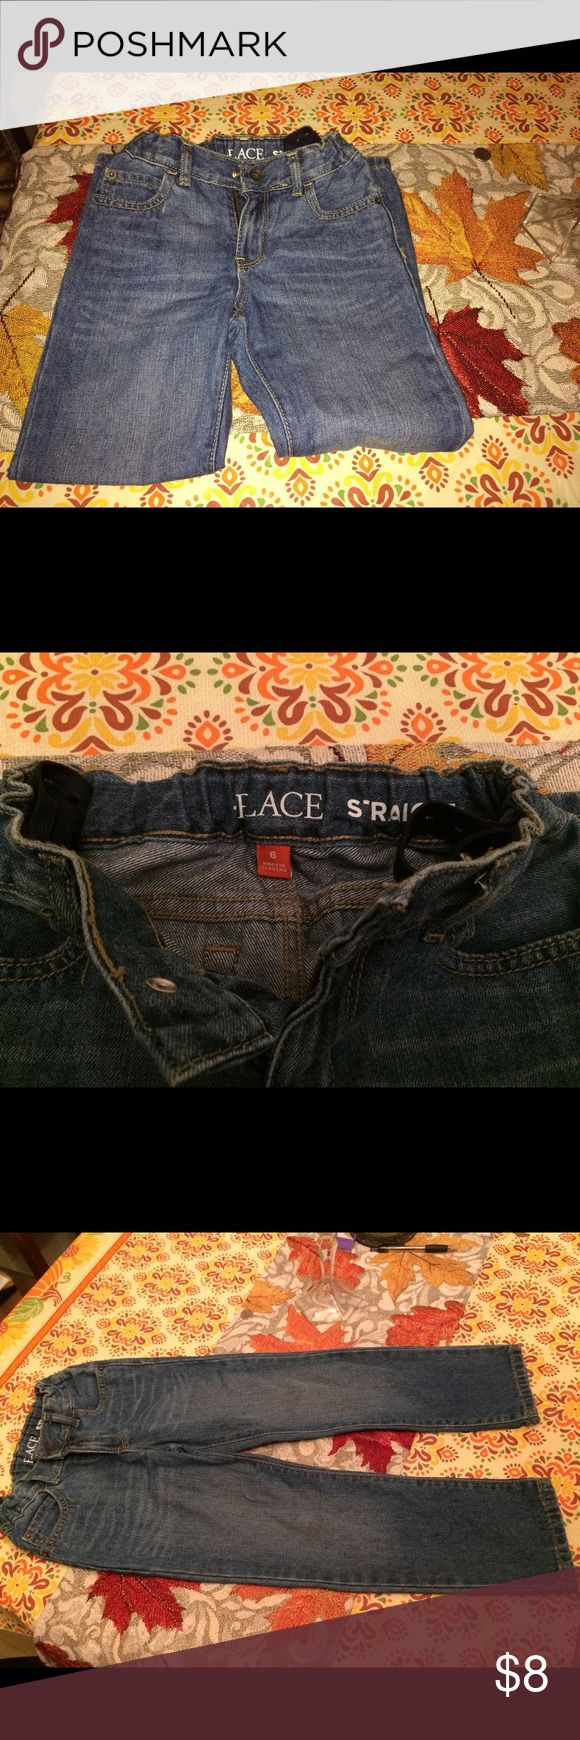 Children's Place Boys Size 6 Adjustable Jeans 👖 Gently used Children's Place Boys Straight Leg Size 6 Blue Jeans. No rips, stains, or tears. The Jeans could use a good ironing. My sons clothes have never been placed in a dryer. So they all keep the original colors and sizes.  From a smoke-free home. Thank you for looking 🦋 The Children's Place Bottoms Jeans